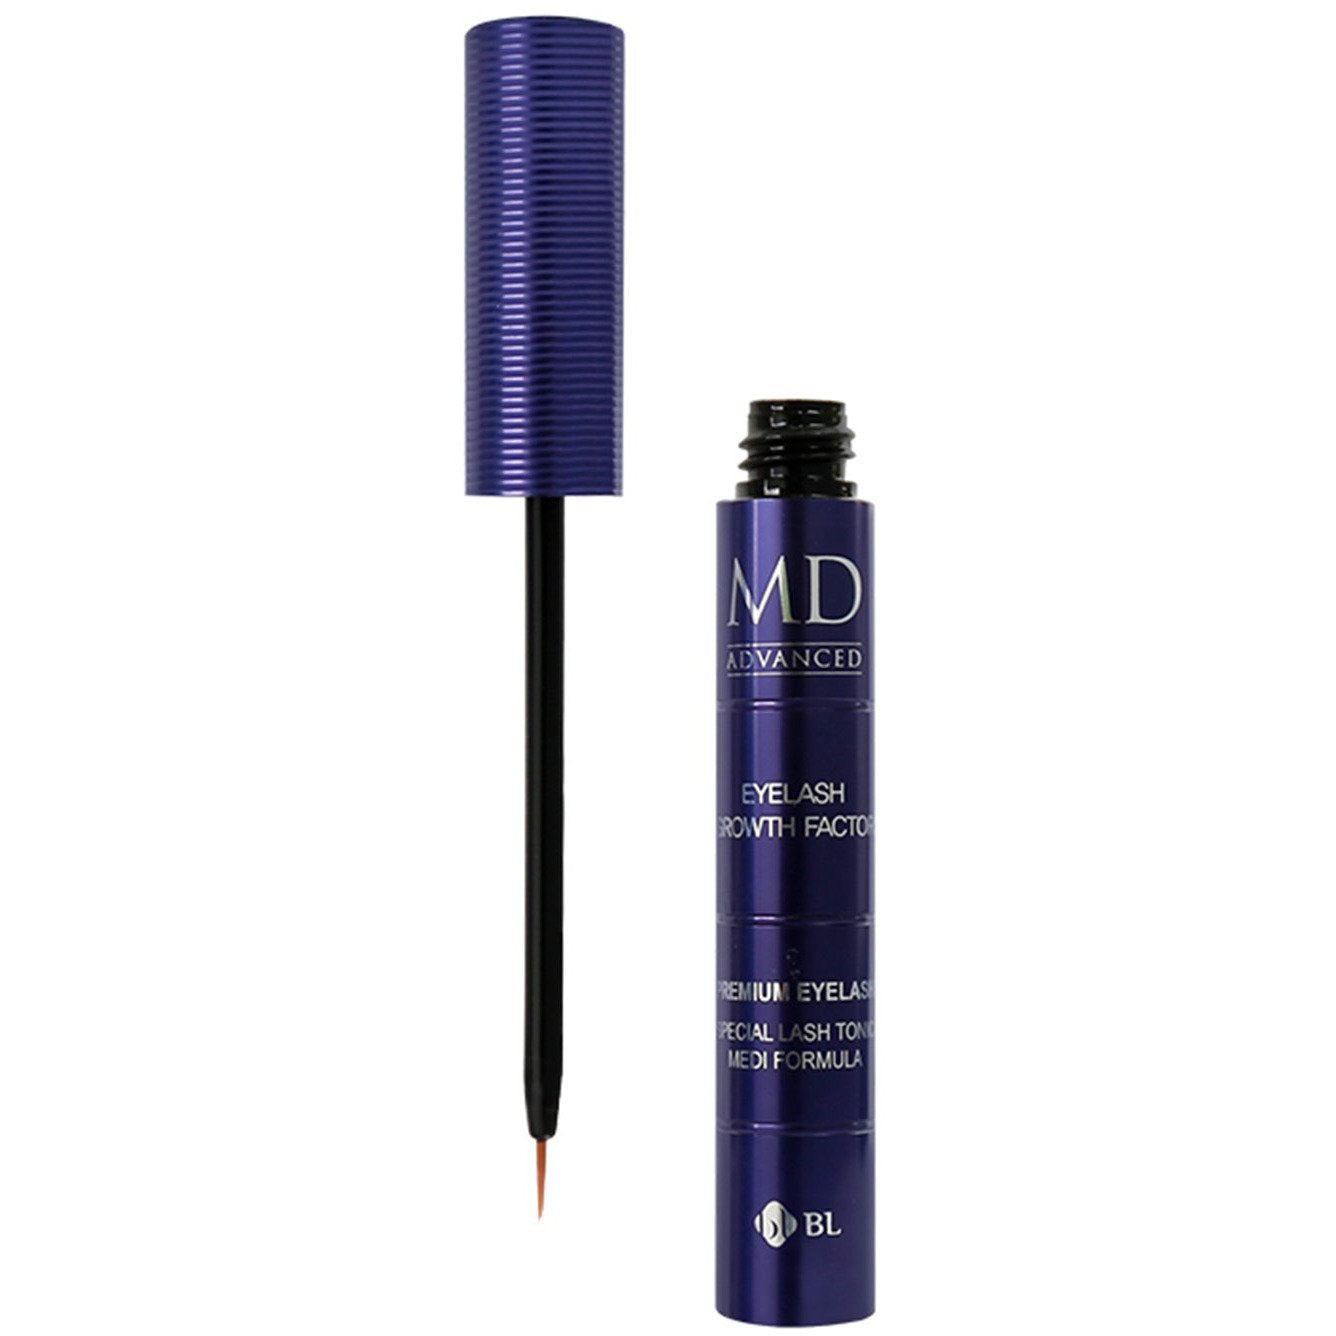 BL Lashes MD Advanced - Eyelash Growth Factor With Special Lash Tonic Medi Formula 5.6ml